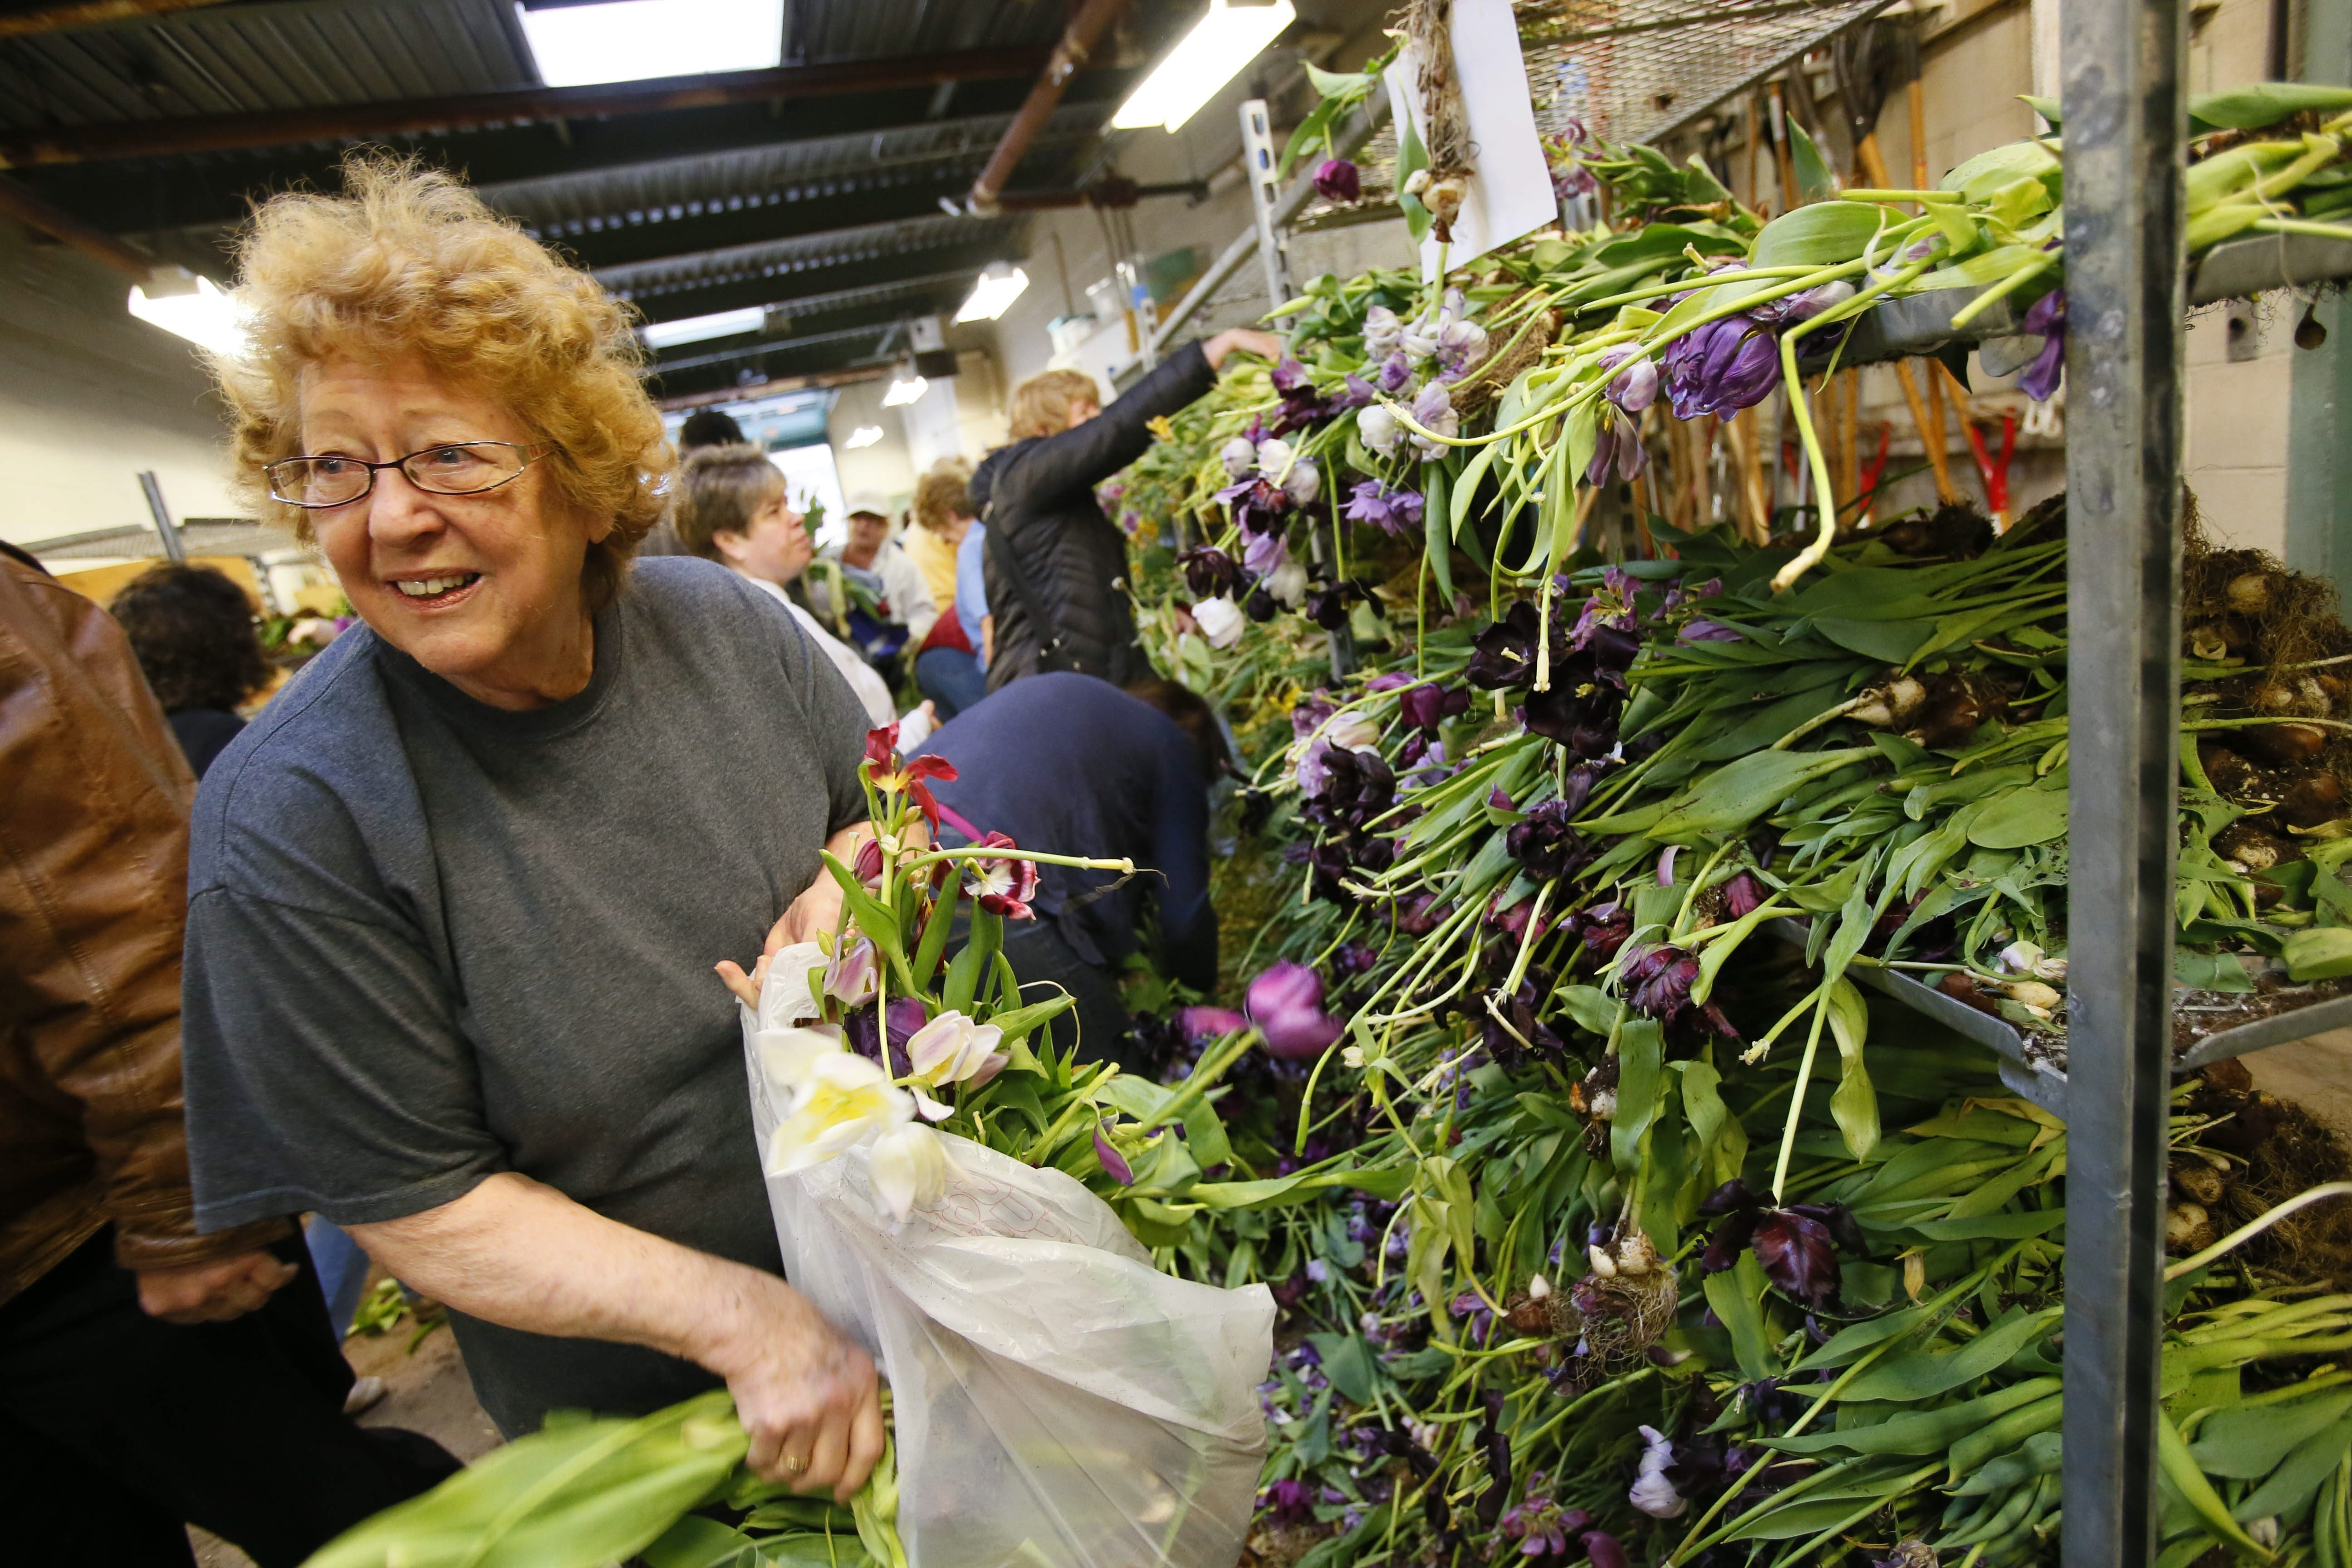 Sharon Colburn of East Aurora fills a bag with tulips at the annual spring bulb sale at the Botanical Gardens, Friday, April 19, 2013.  (Derek Gee/Buffalo News)